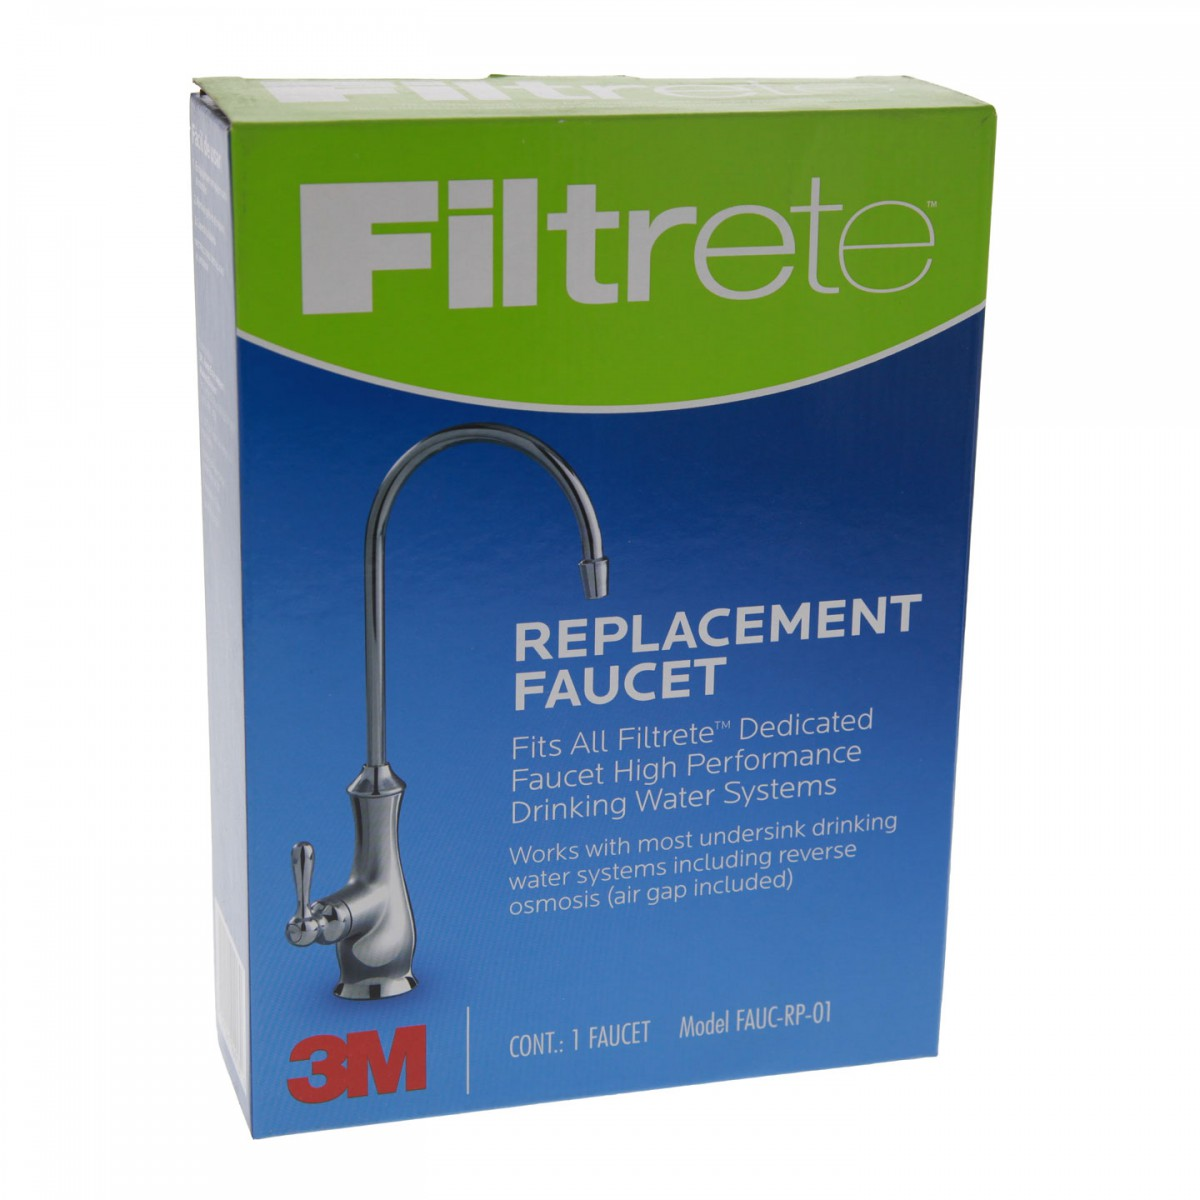 Filtrete Fauc Rp 01 Replacement Faucet Waterfilters Net